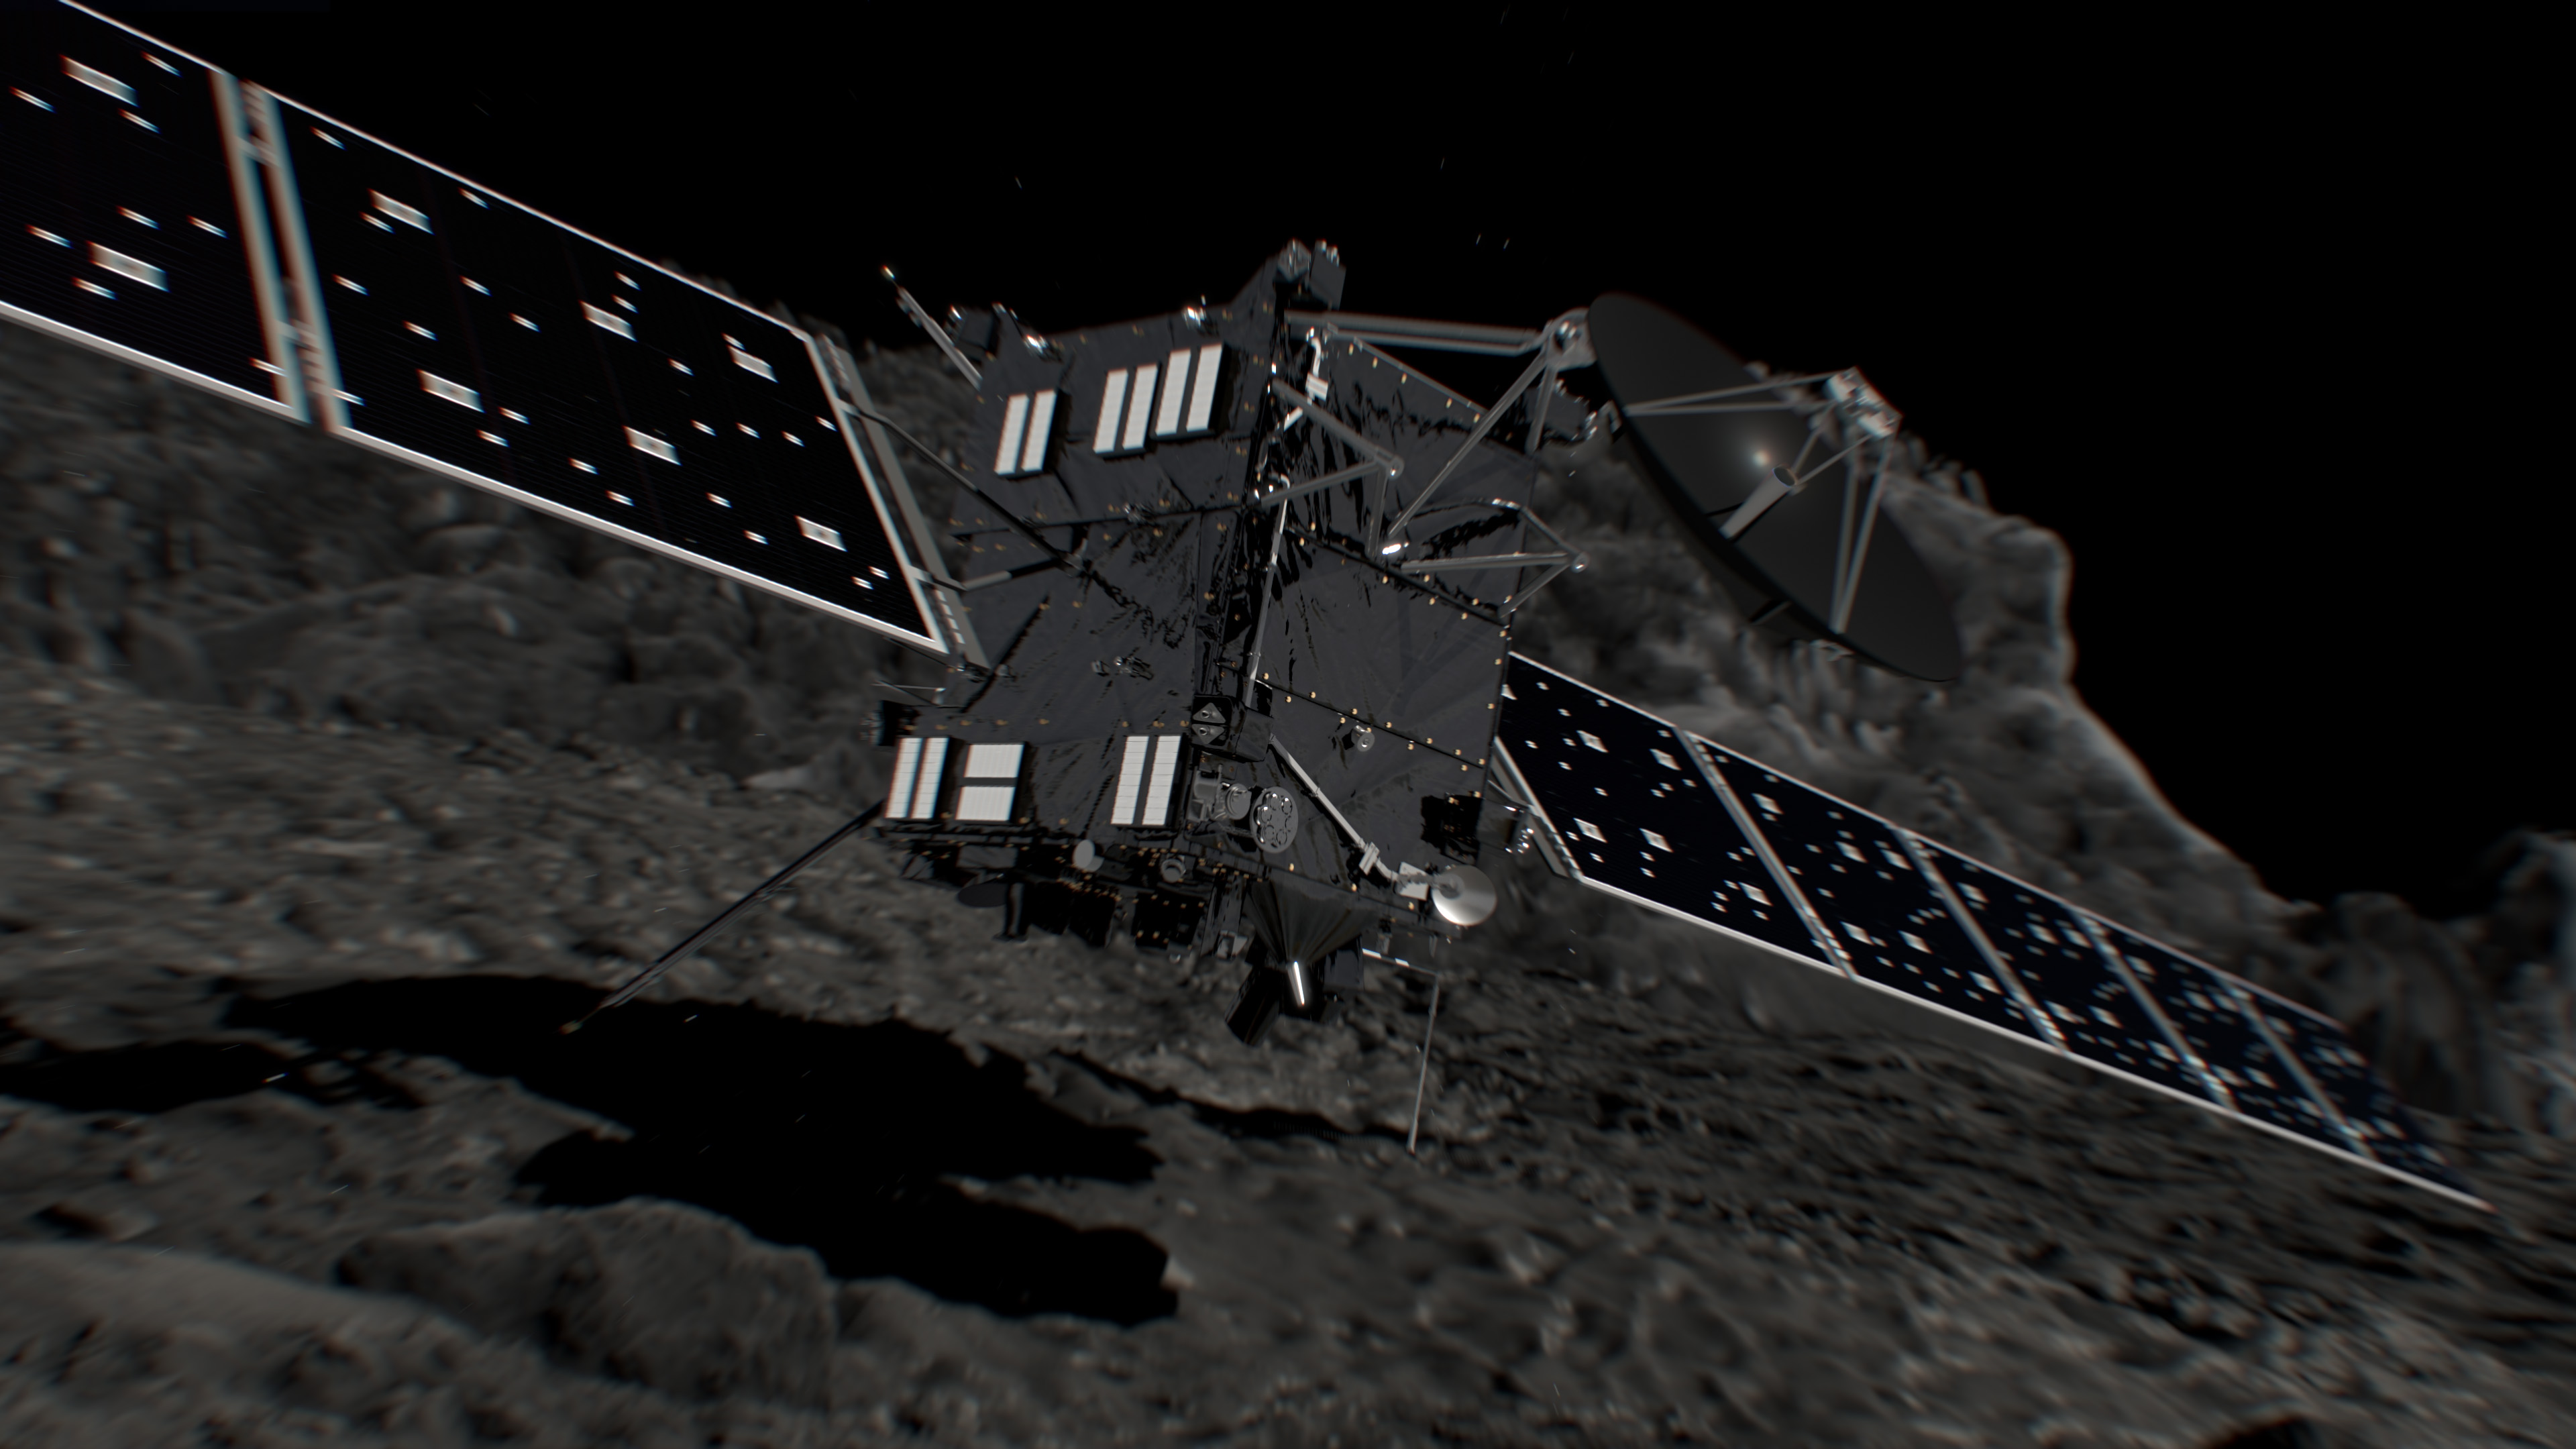 The Life and Death of the Rosetta Spacecraft: 2004 to 2016